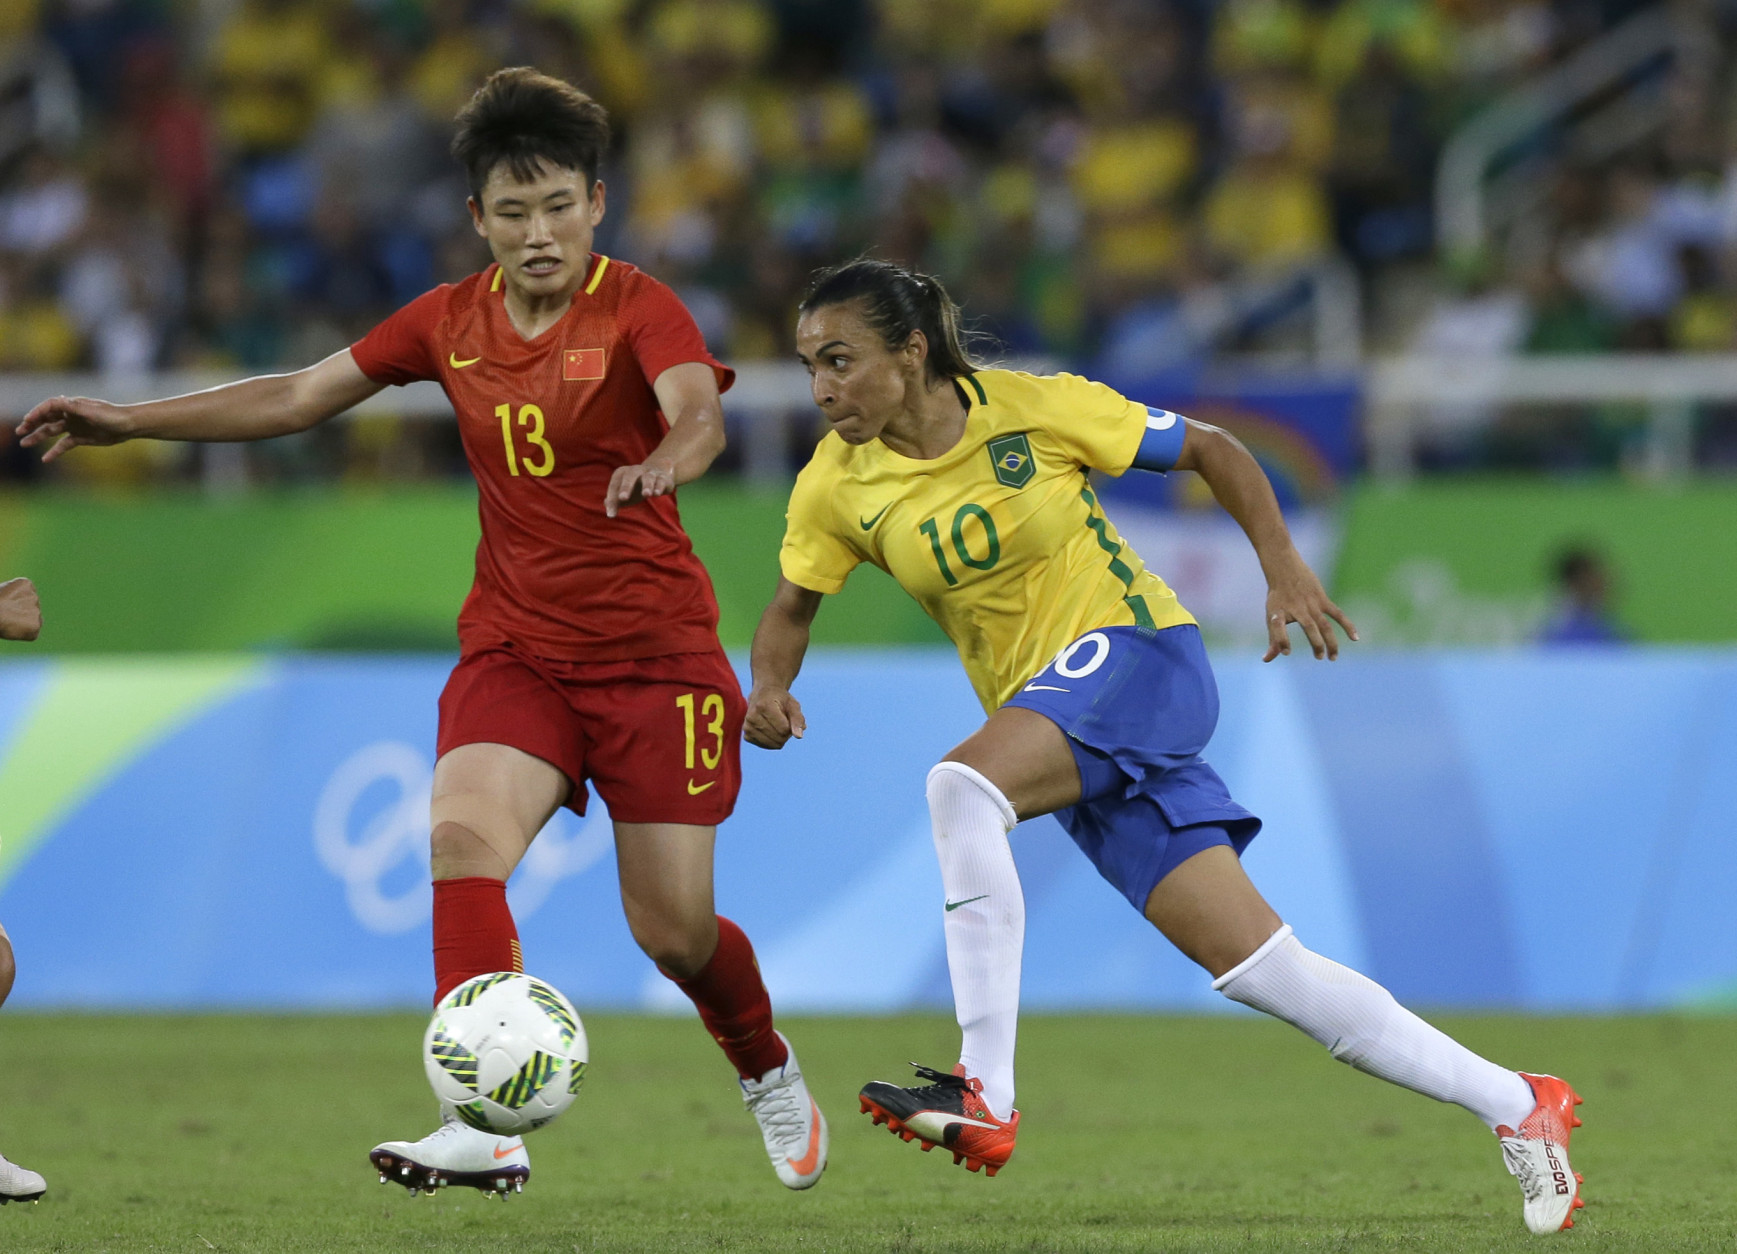 Brazil's Marta controls the ball past China's Pang Fengyue during a Group E match of the Women's Olympic Football Tournament between Brazil and China at the Rio Olympic Stadium in Rio de Janeiro, Brazil, Wednesday, Aug. 3, 2016.(AP Photo/Leo Correa)